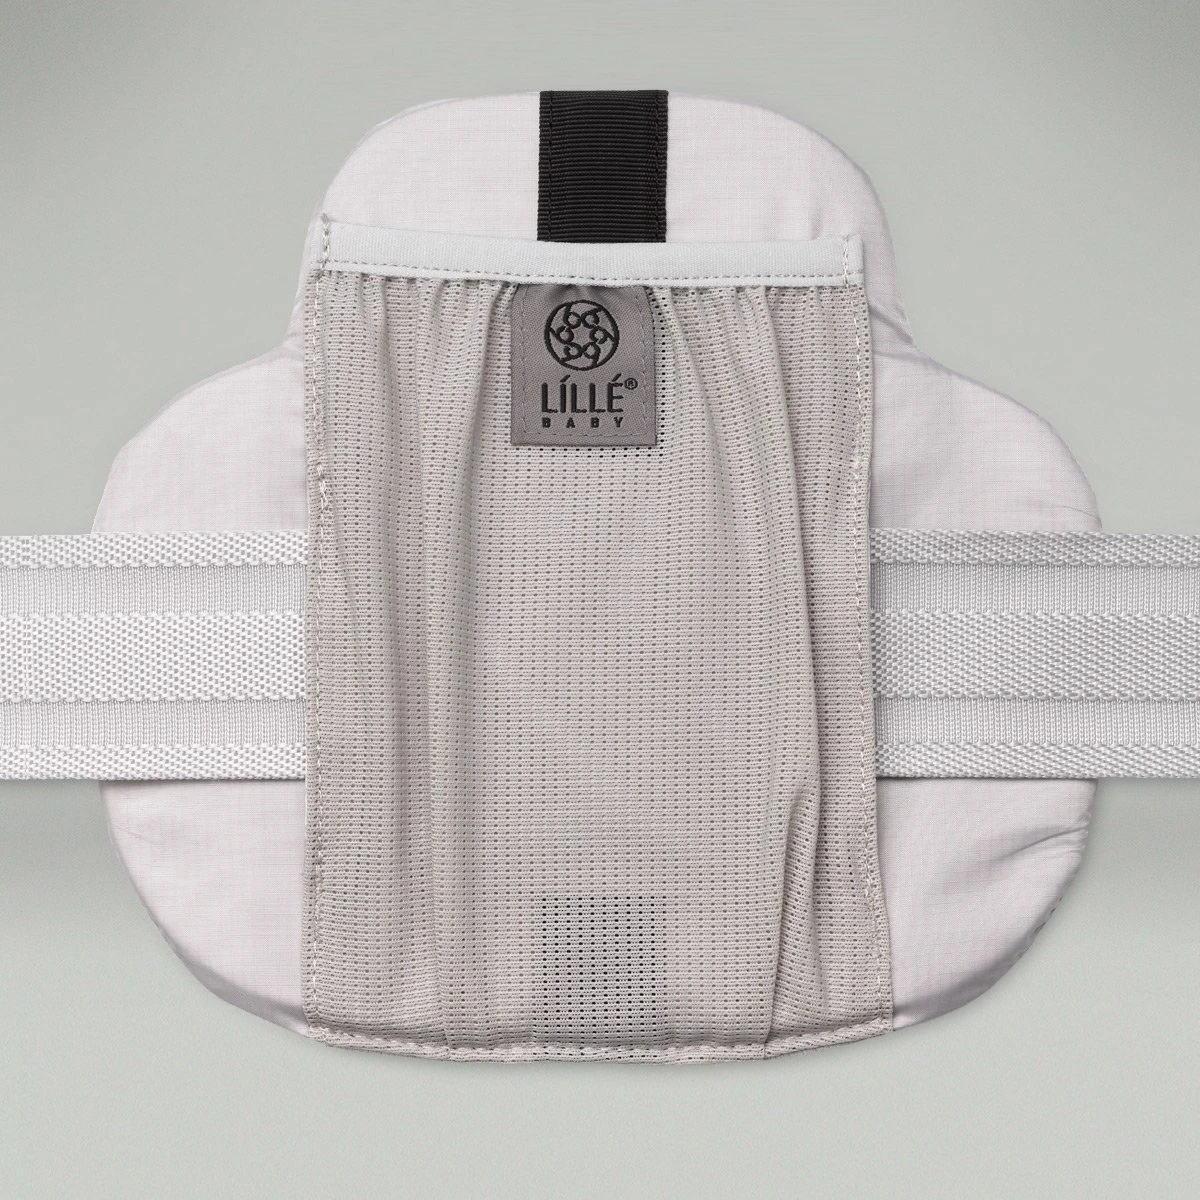 LILLEbaby Pursuit Sport Carrier in Water